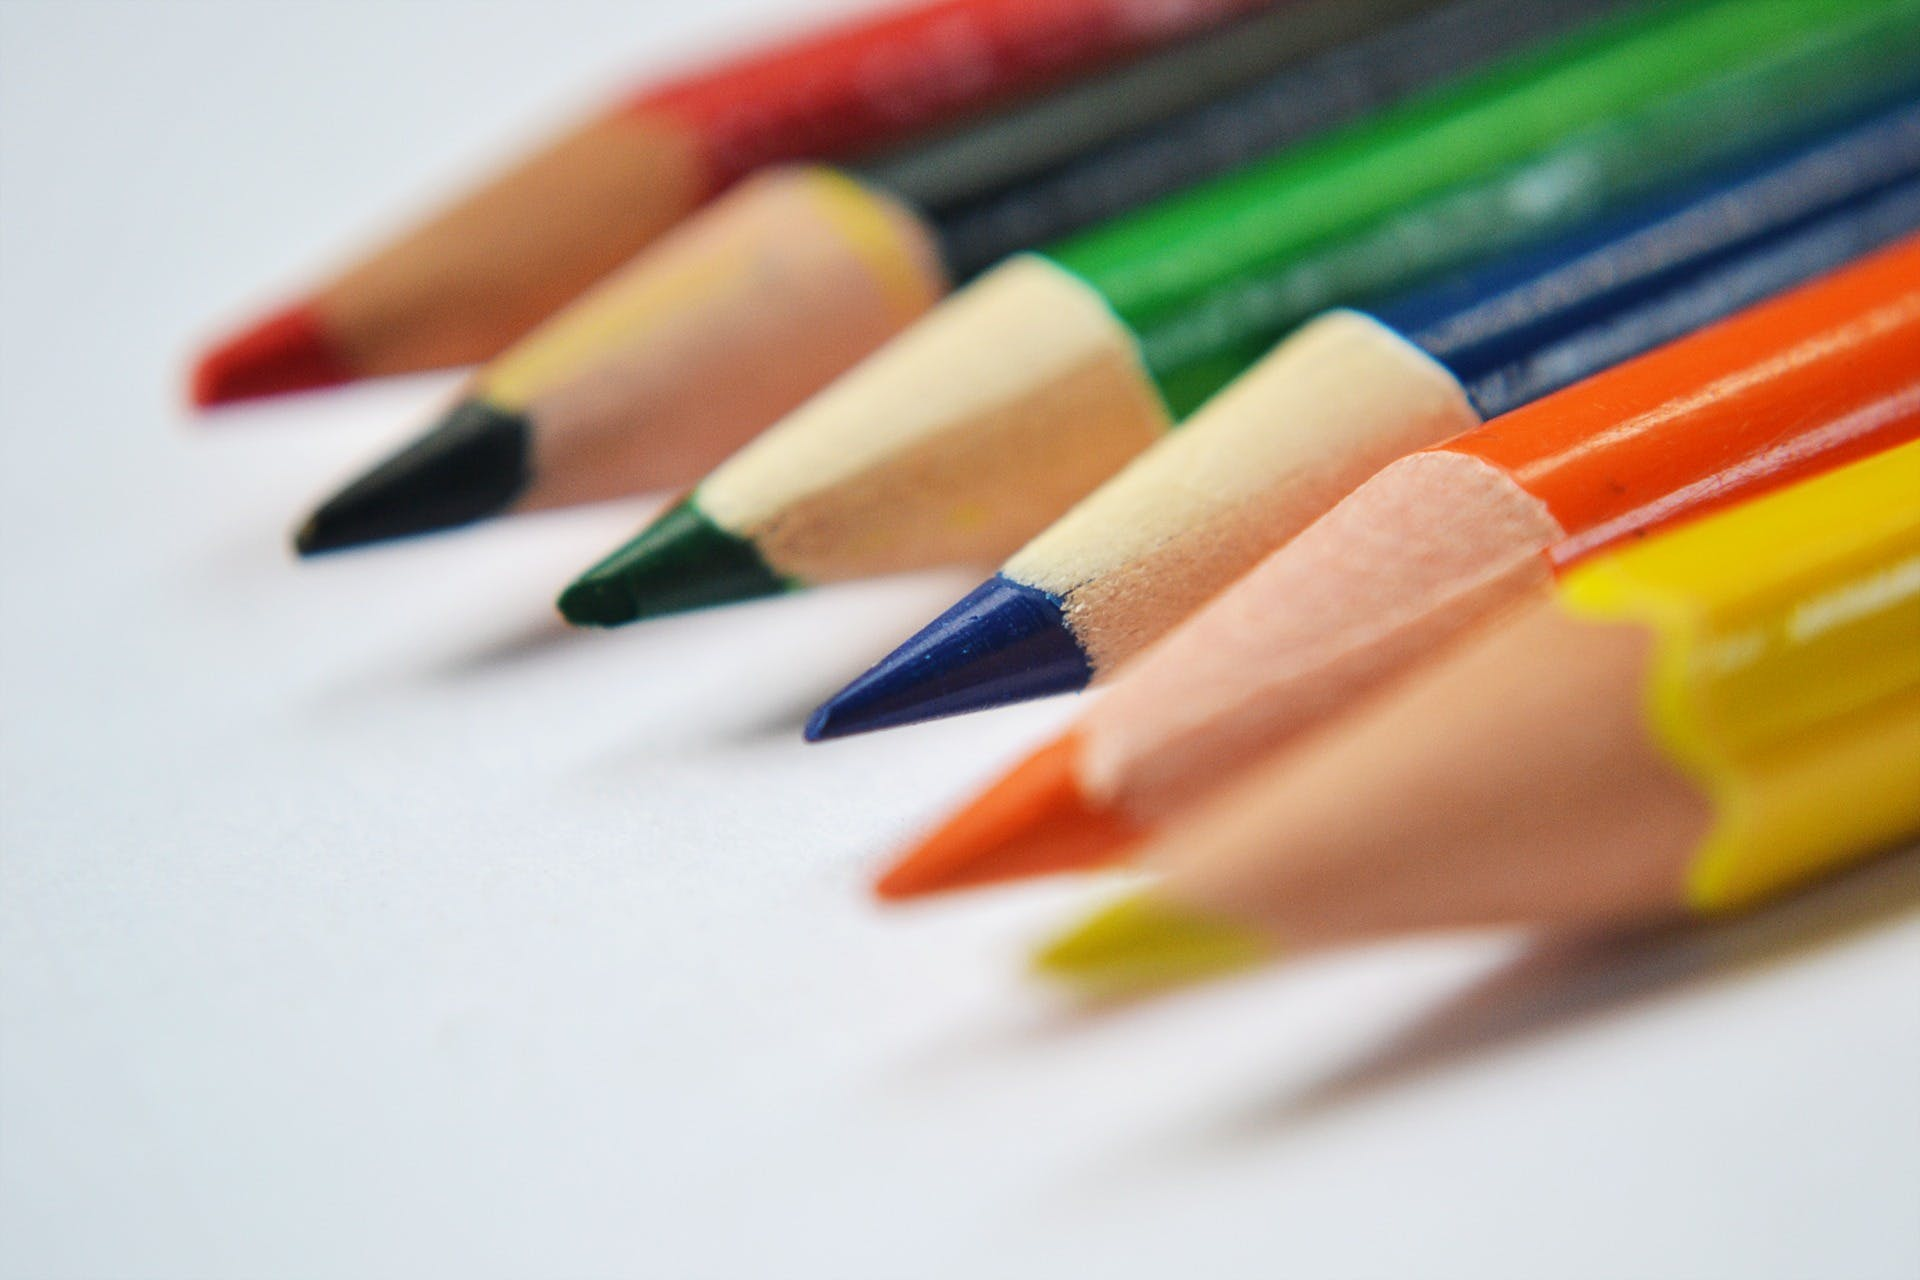 Assorted-color Coloring Pencils on White Surface